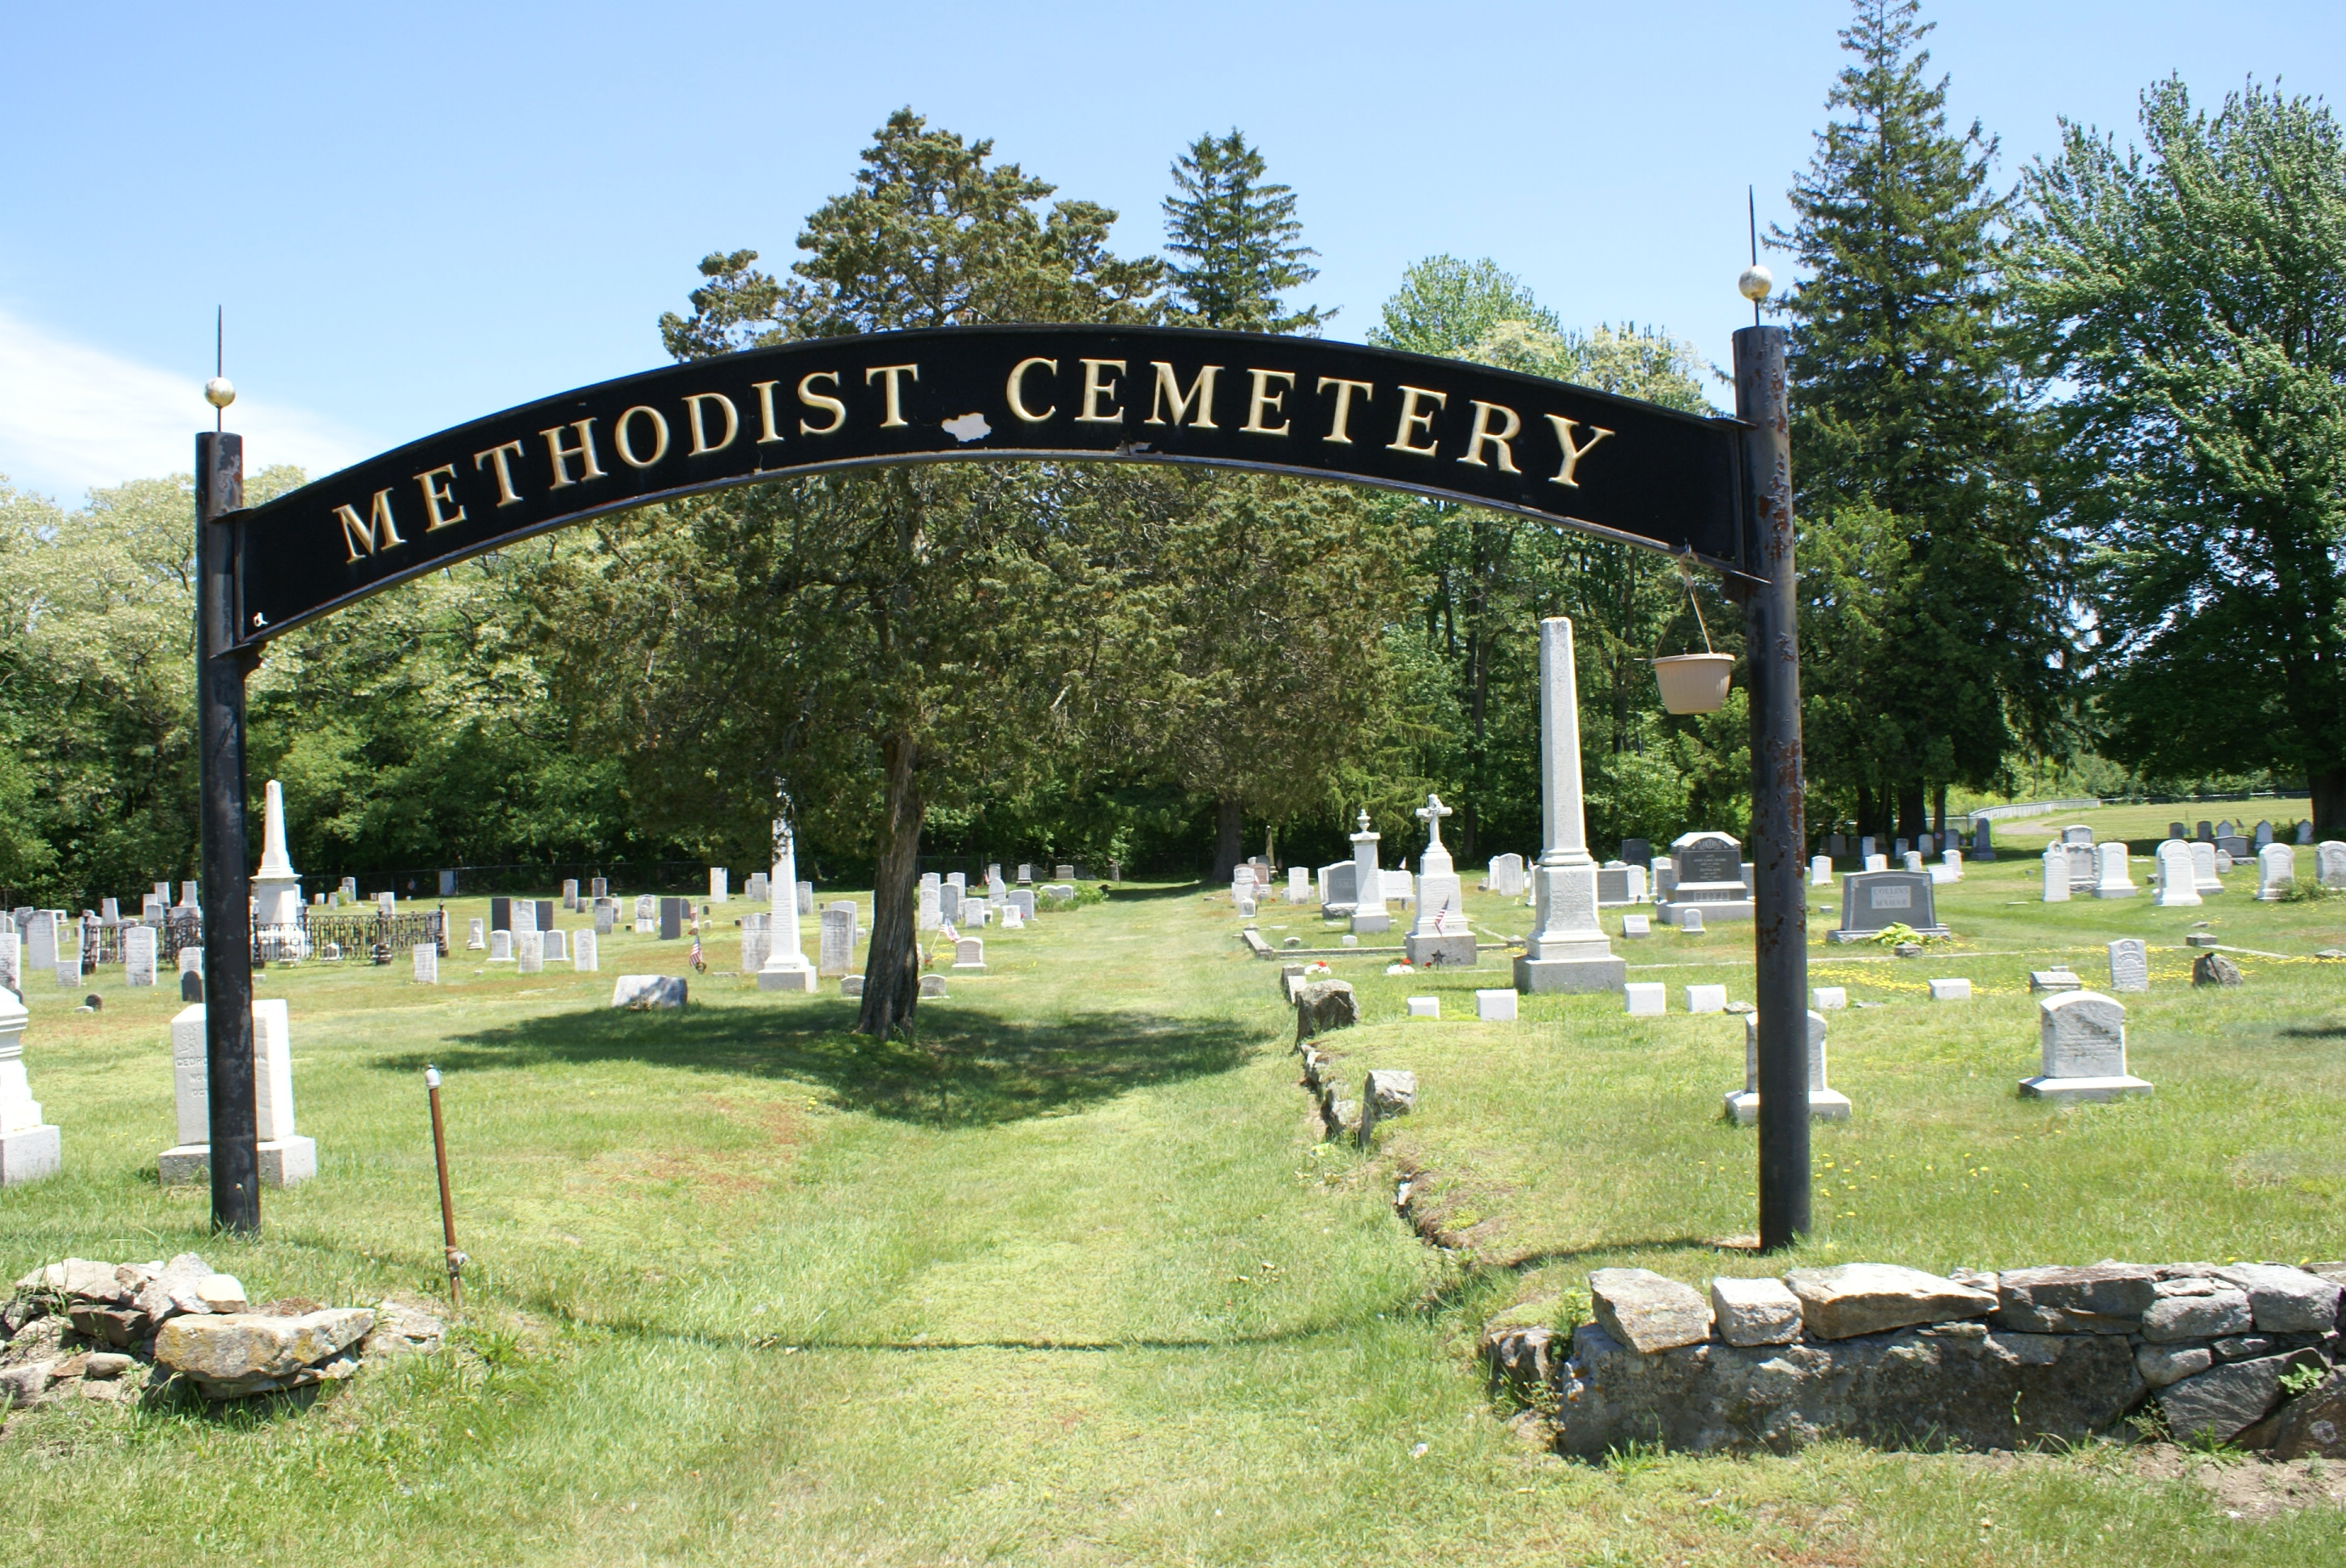 Smithtown AKA Methodist Cemetery